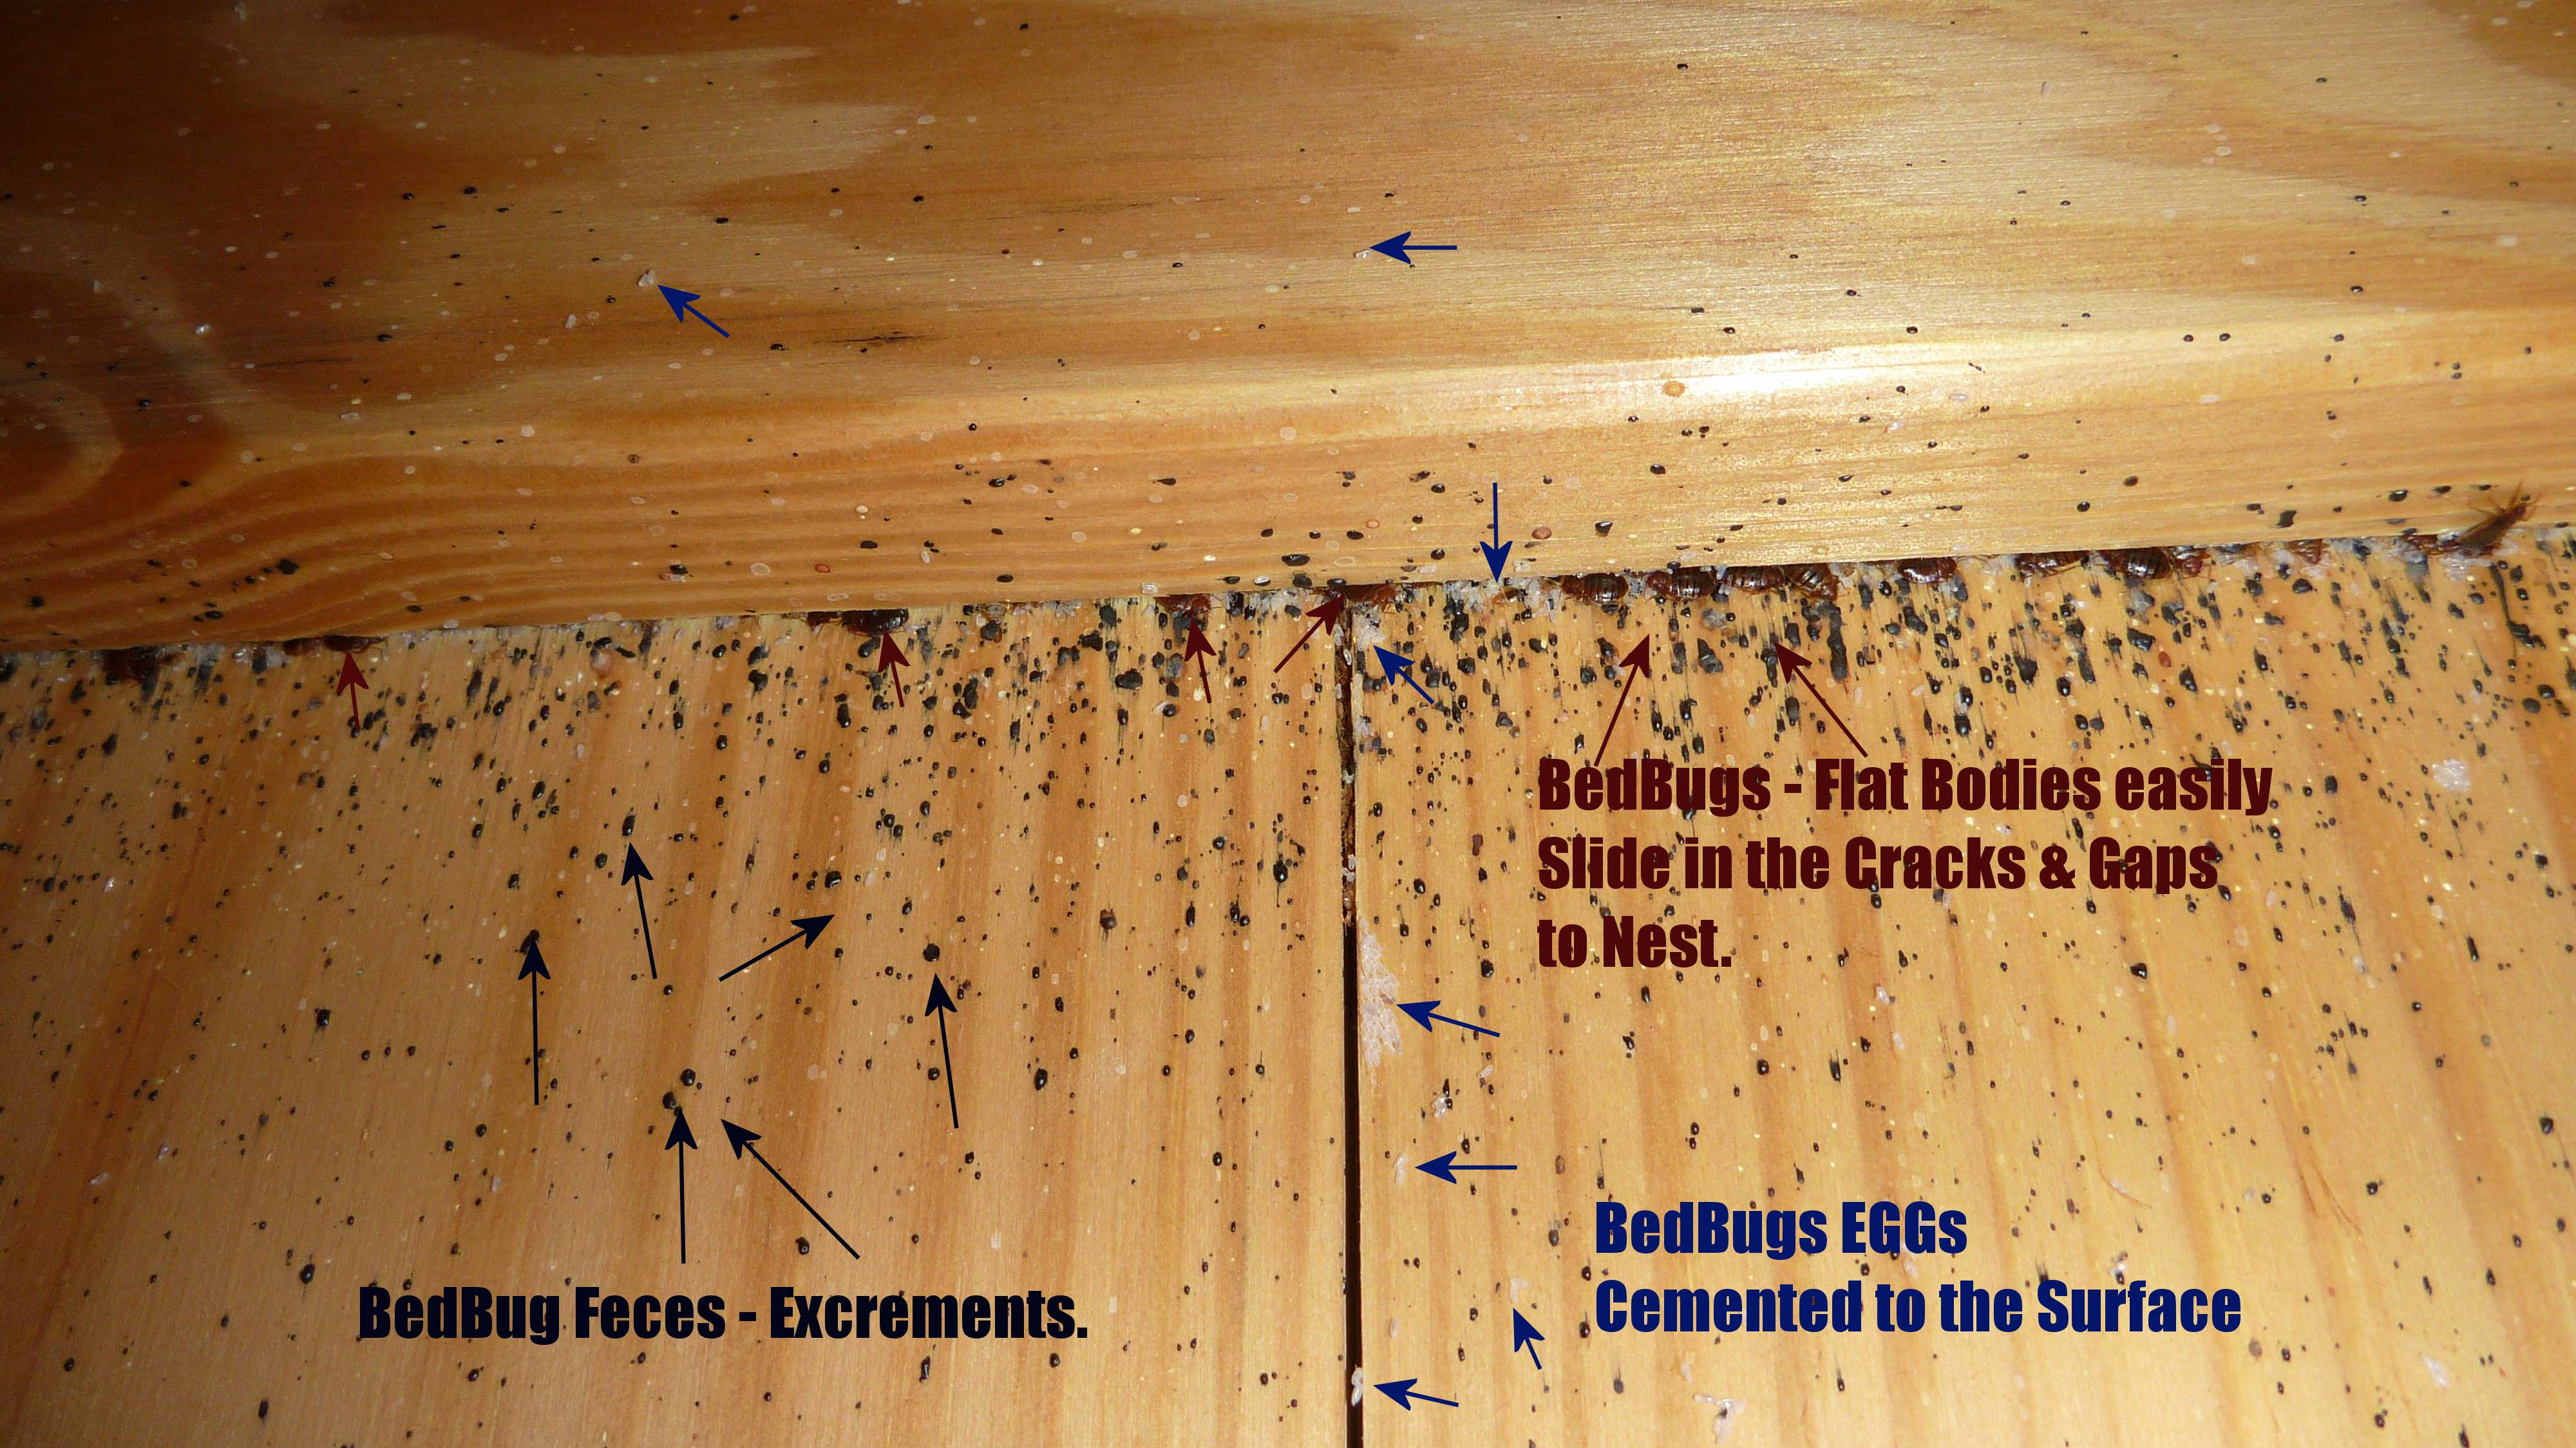 Bed Bugs FAQs - Pest Control of Bed Bugs, Fleas and ...